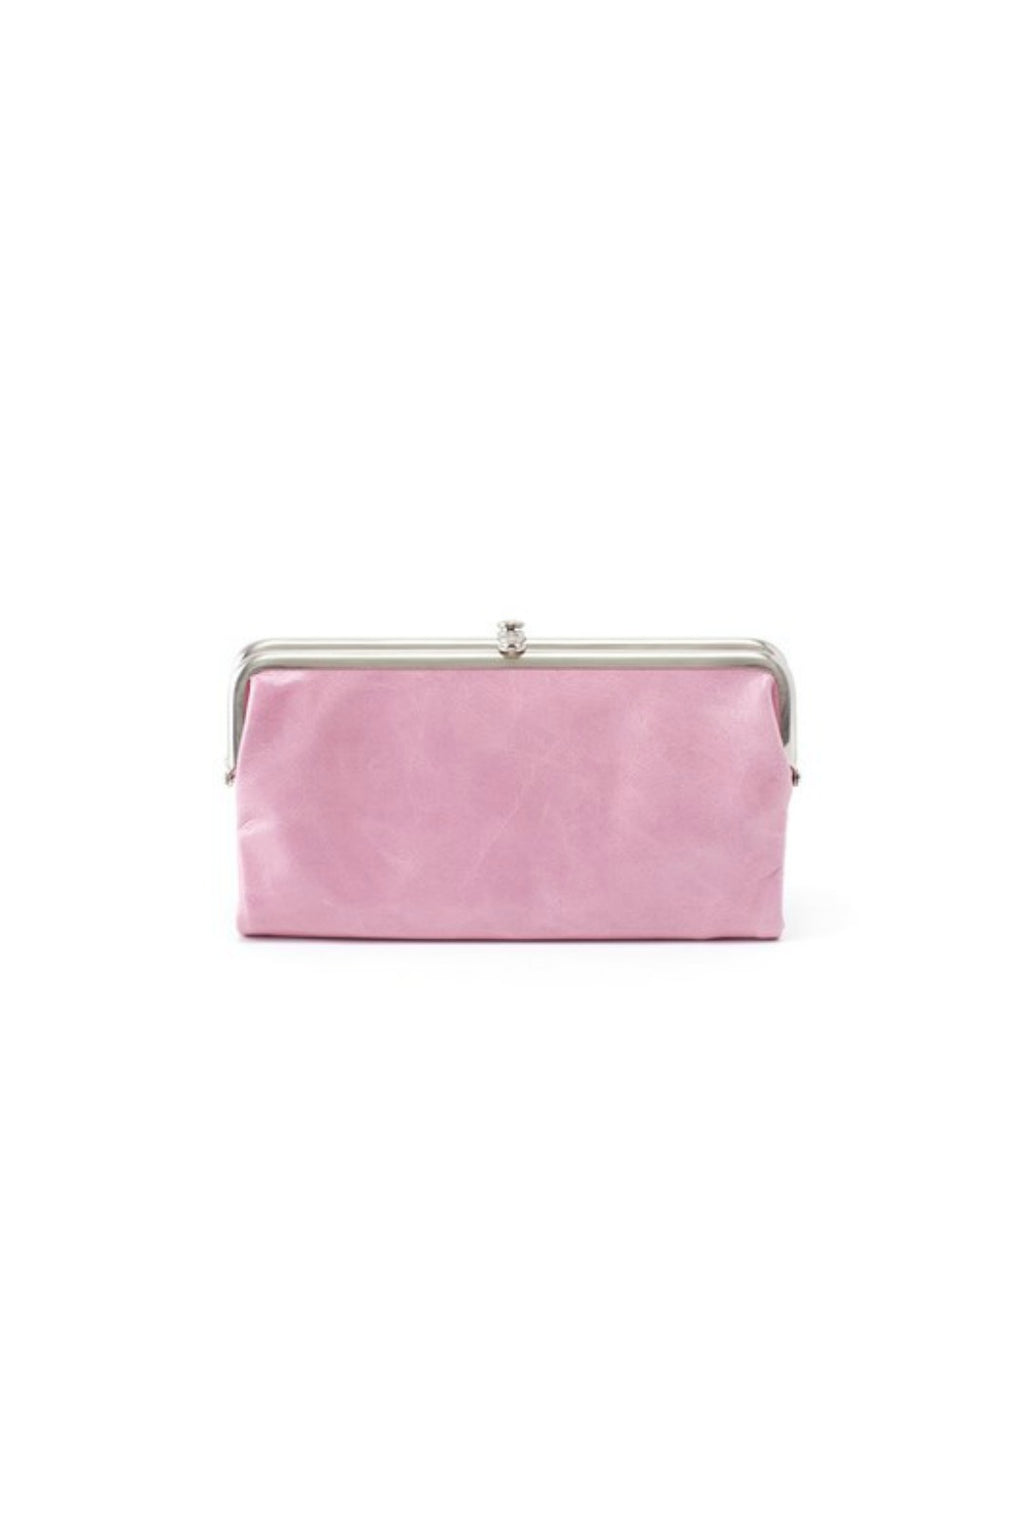 Hobo Lauren Wallet - Lilac